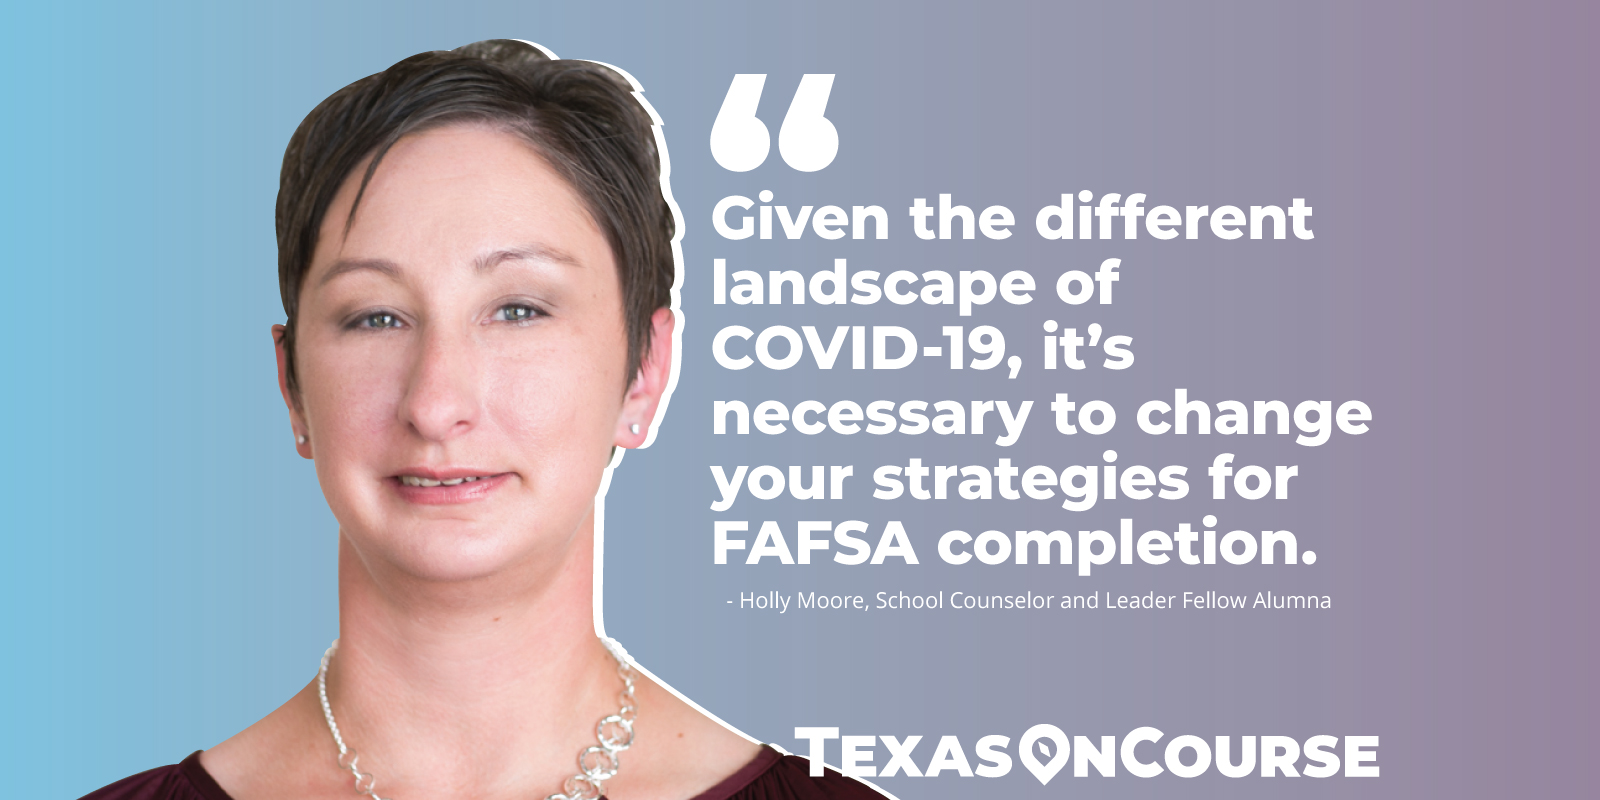 Given the altered landscape of COVID-19, it's necessary to change your strategies for FAFSA completion. - Holly Moore, School Counselor and Leader Fellow Alum